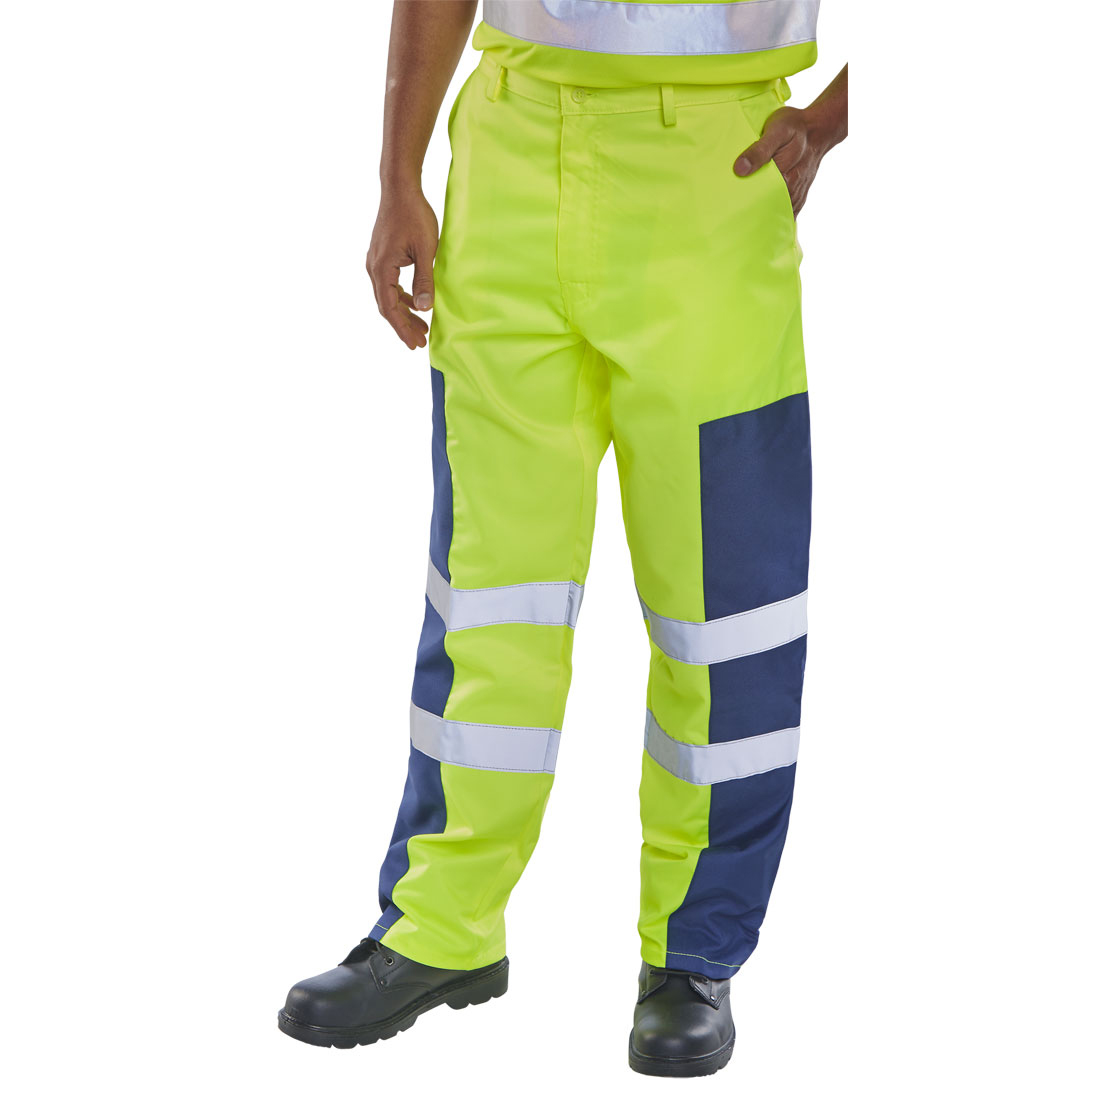 High Visibility Click Workwear Trousers Hi-Vis Nylon Patch Yellow/Navy 44 Long Ref PCTSYNNP44T *Up to 3 Day Leadtime*